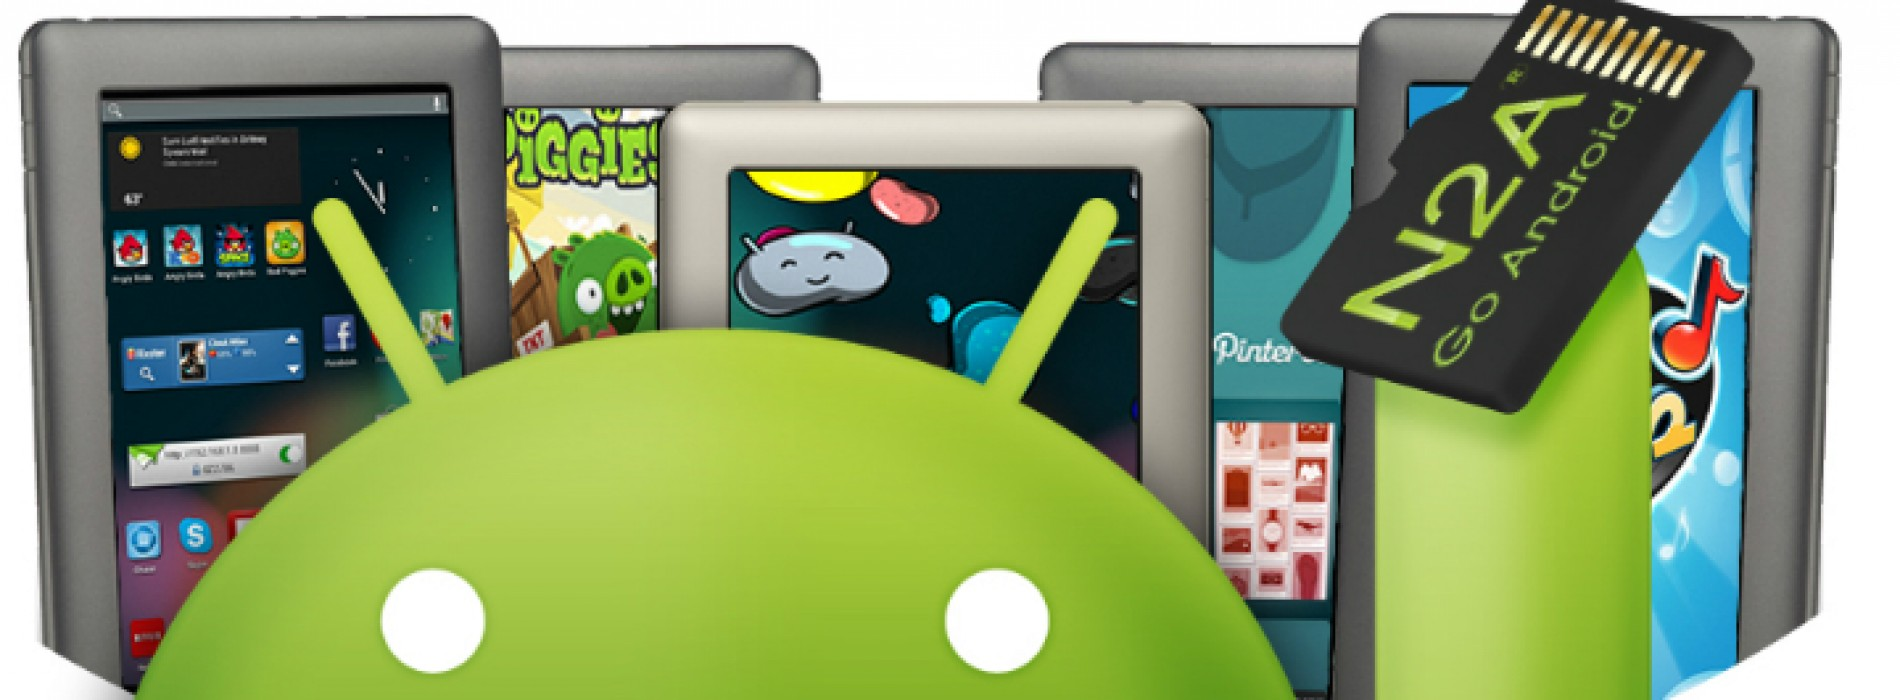 Boot your Nook Color and Nook Tablet to Android 4.1 with N2A microSD